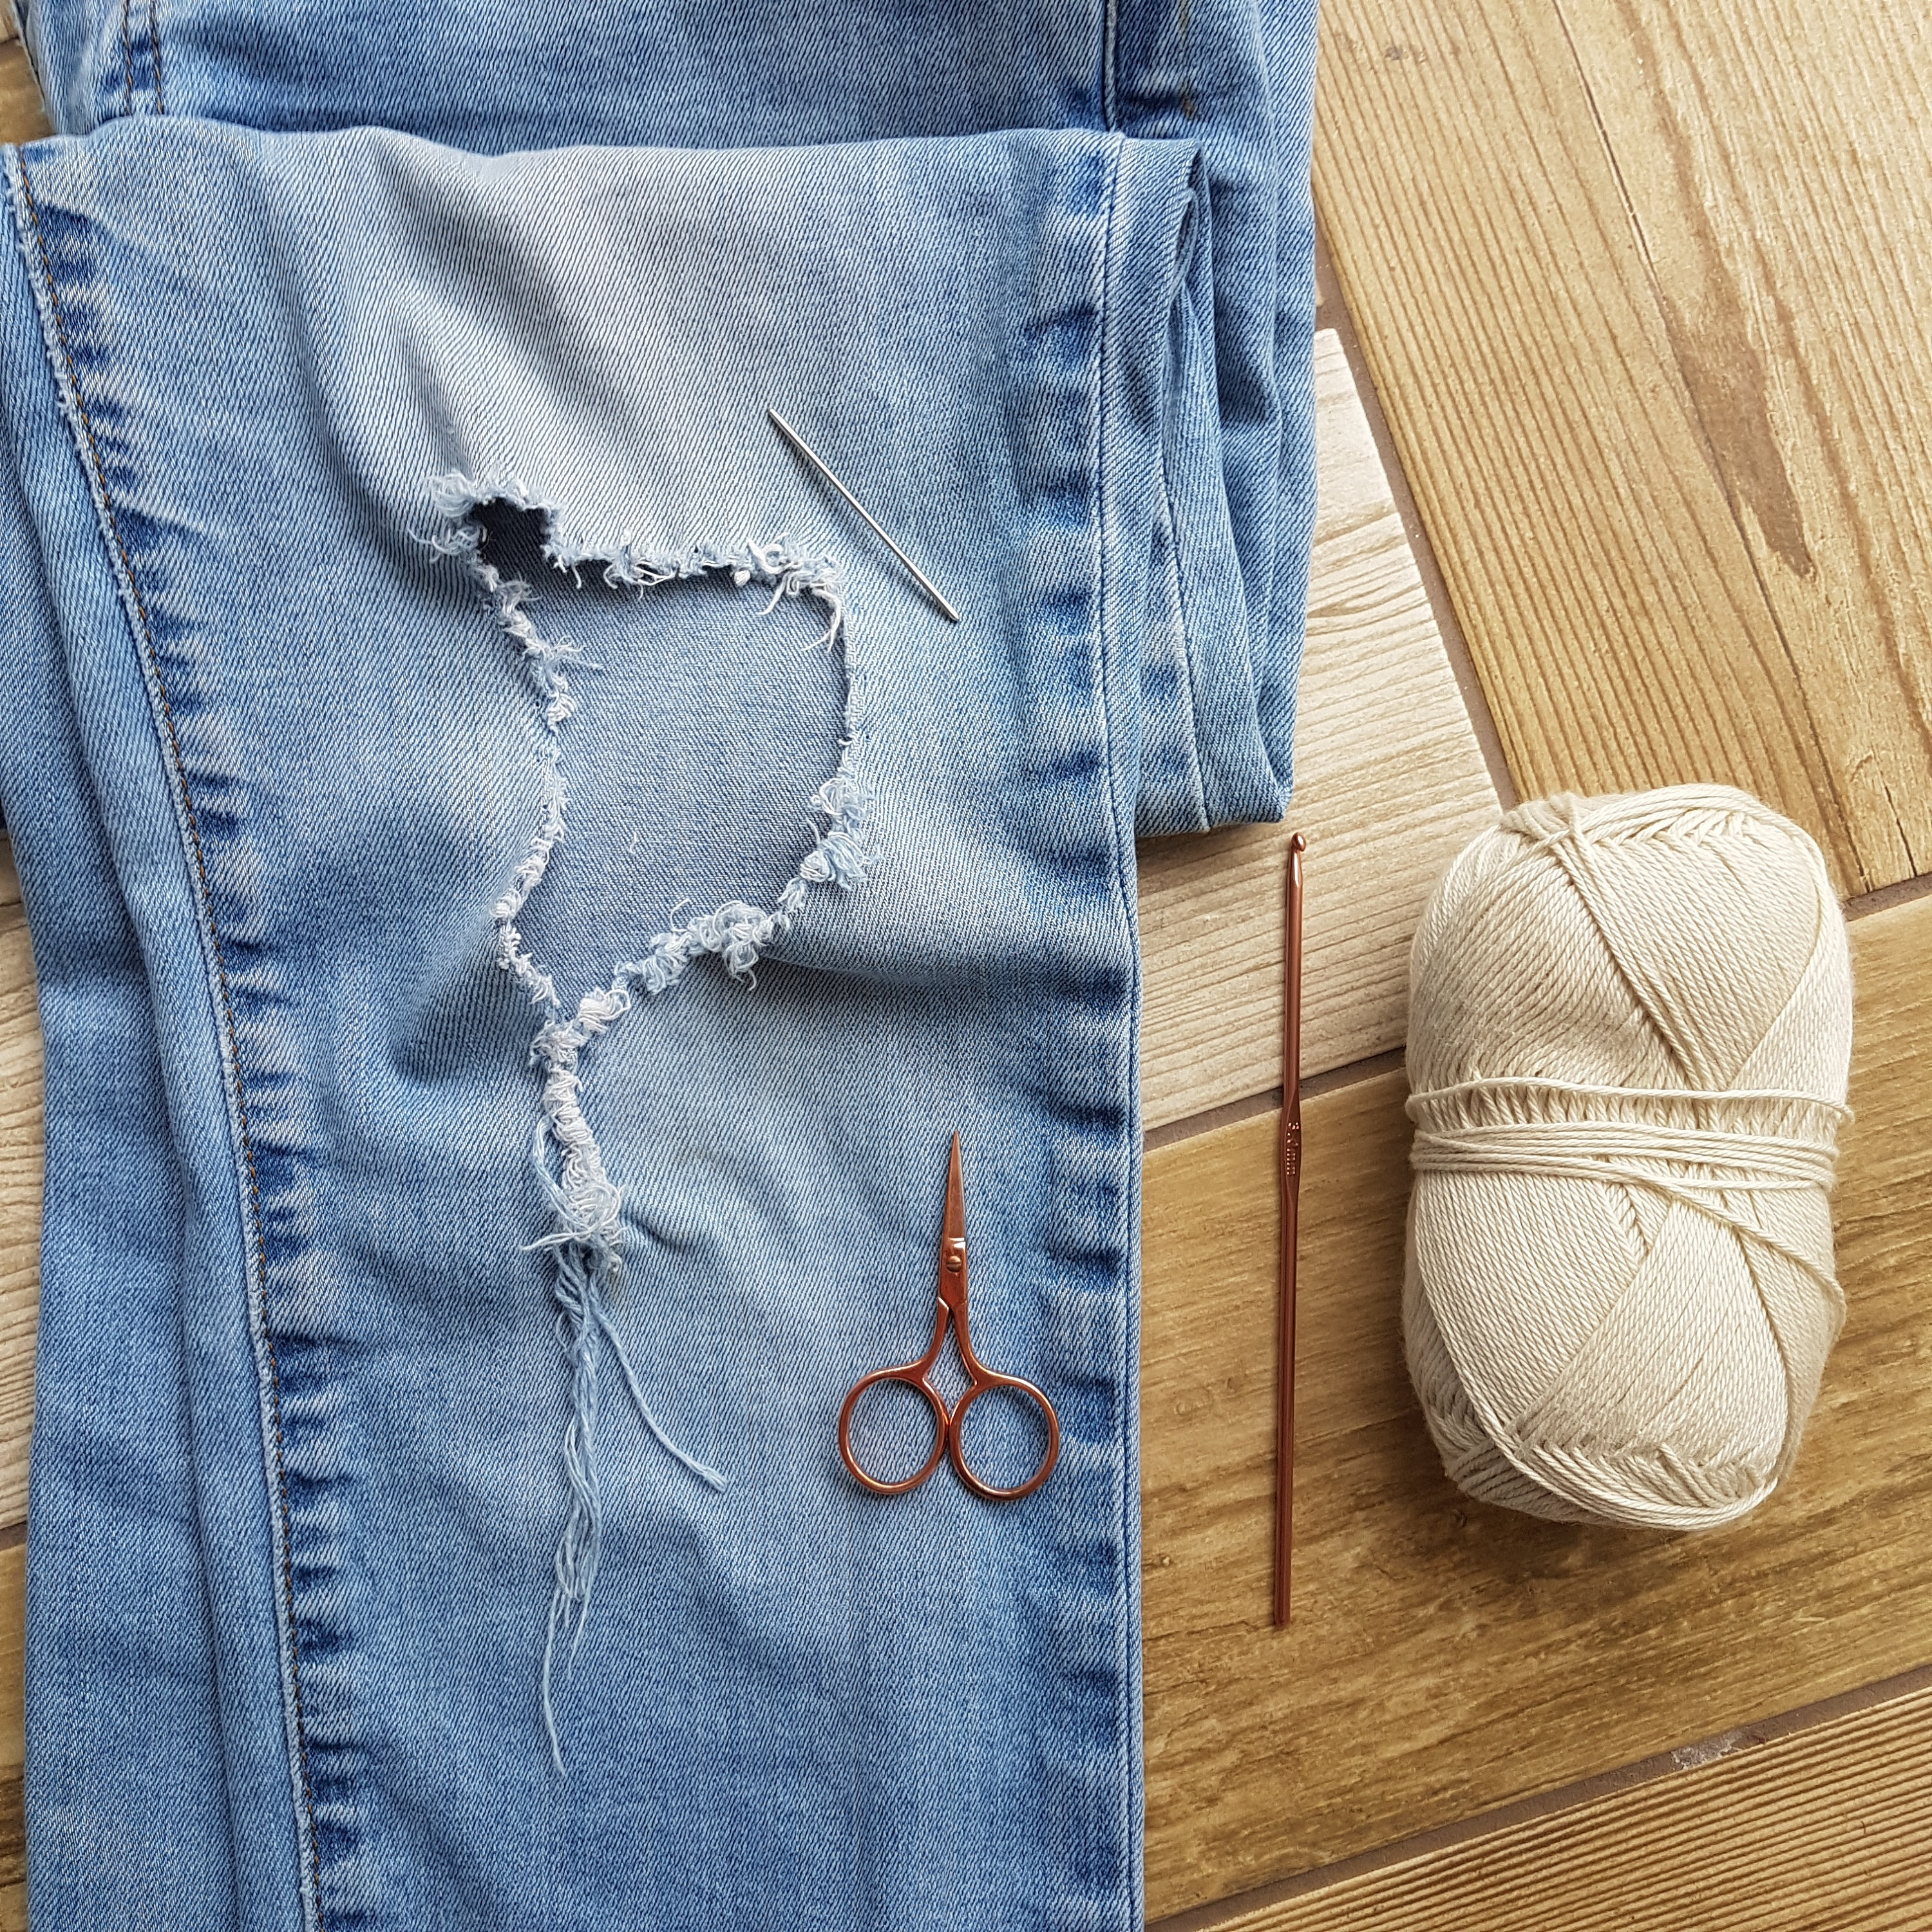 Crochet Ripped Jeans Patch Tutorial With Pictures